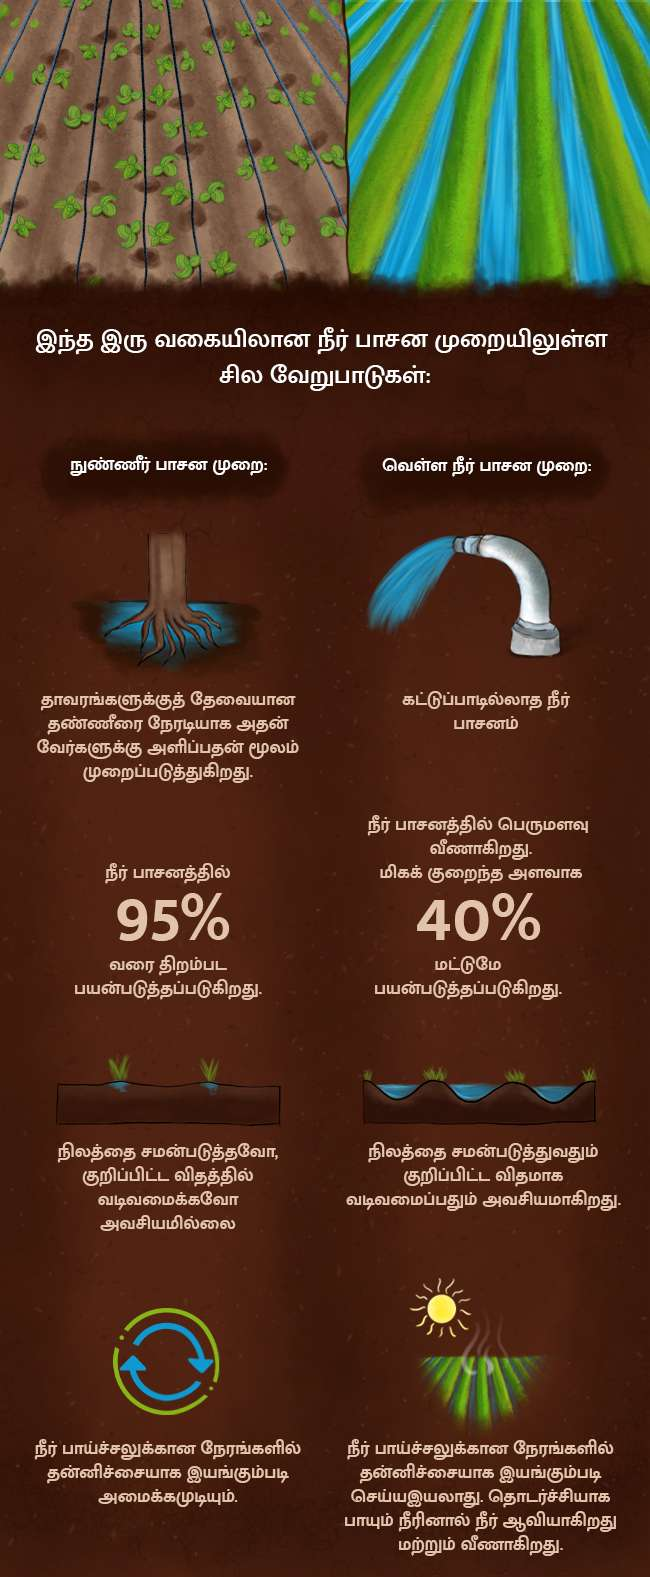 rfr2019_micro_irrigation_tamil_blog_infographic